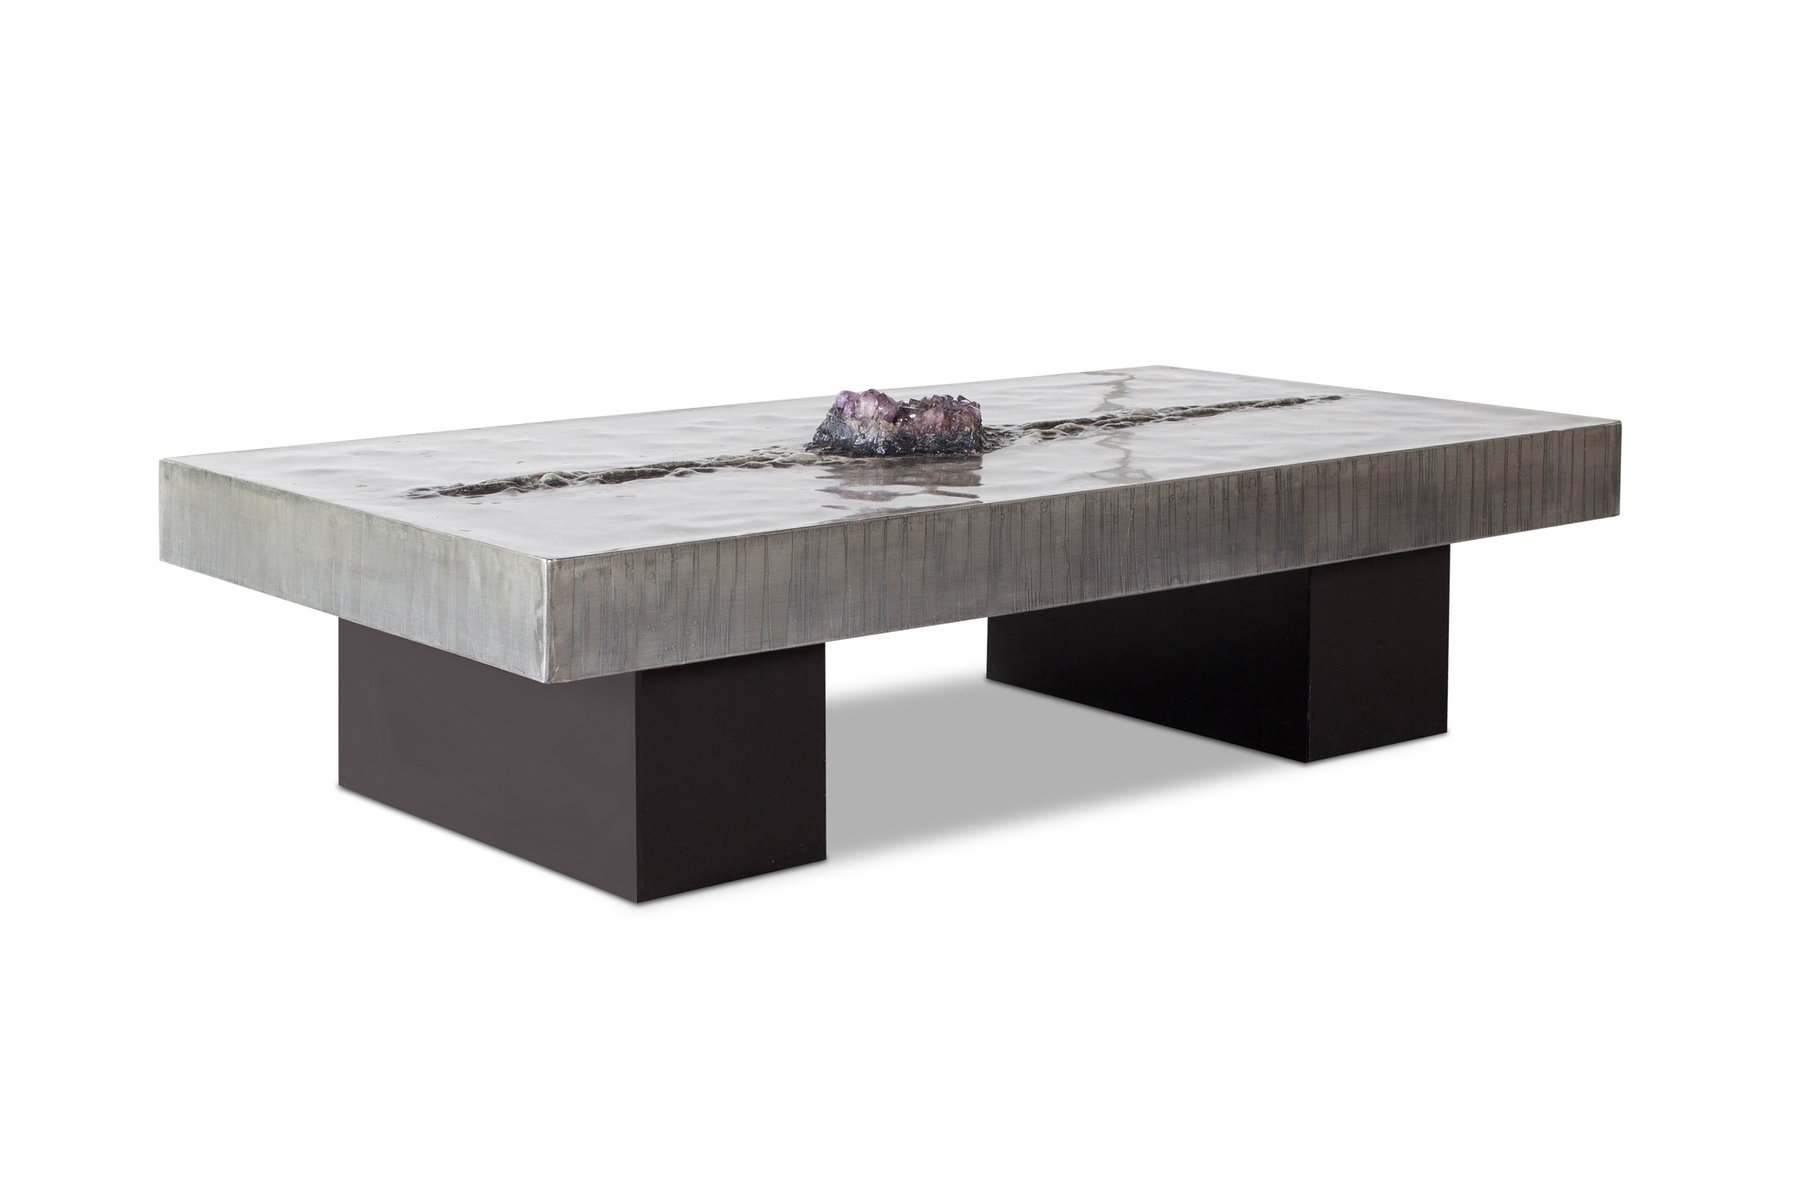 Belgian coffee table with amethyst inlay by marc dhaenens 1970s price per piece geotapseo Choice Image